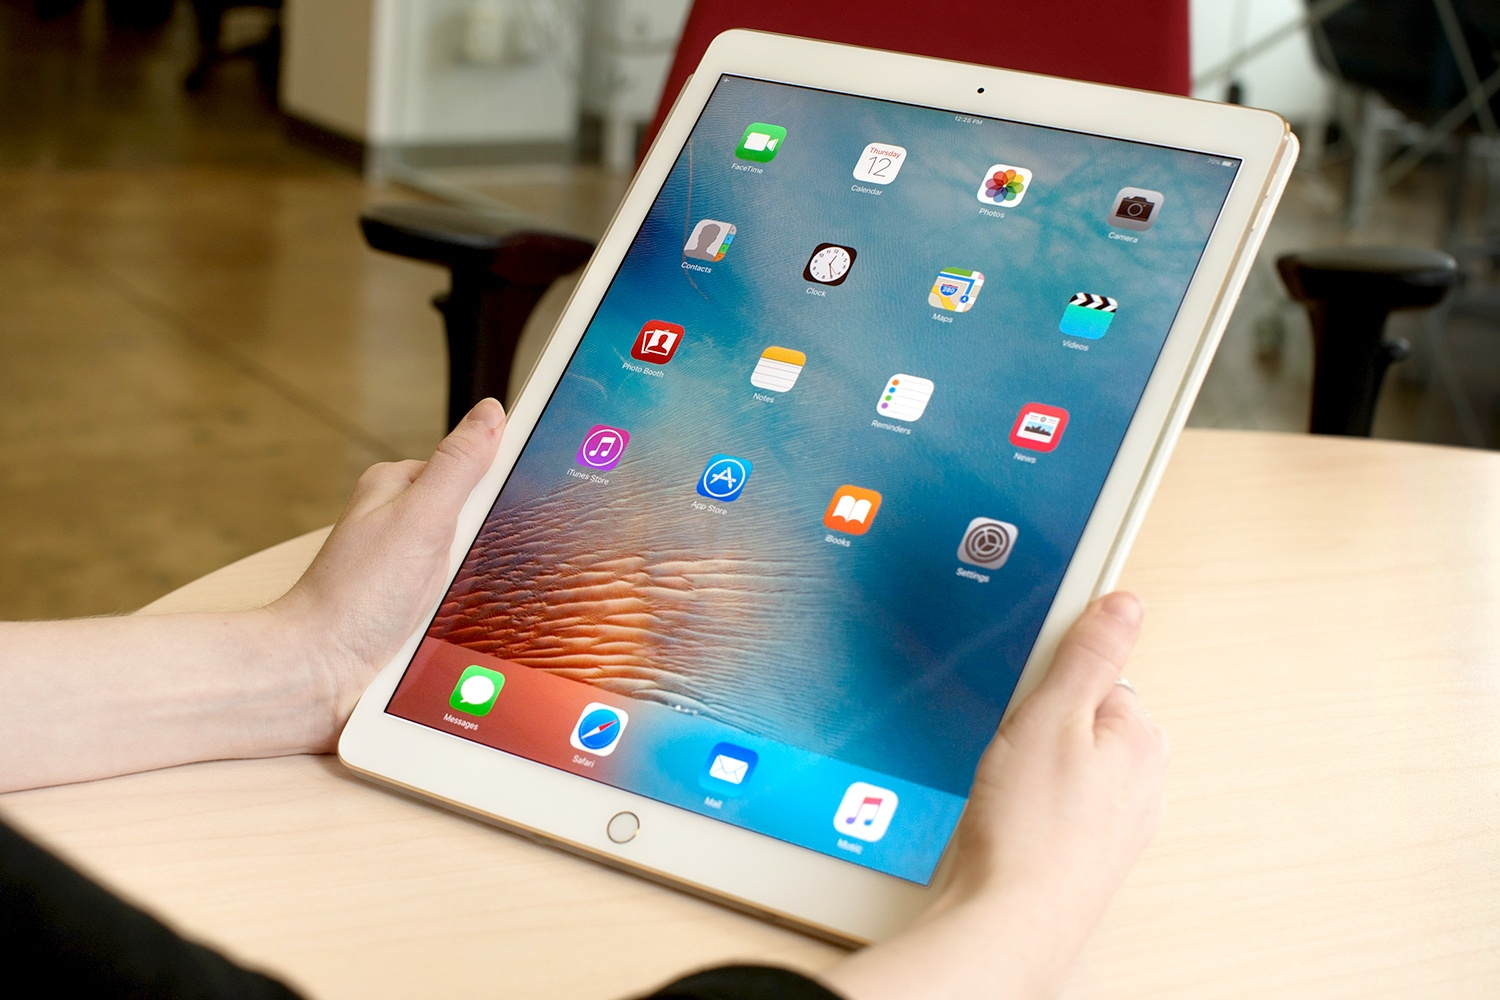 Apple is working on a new 10.5 inch iPad, according to the reports